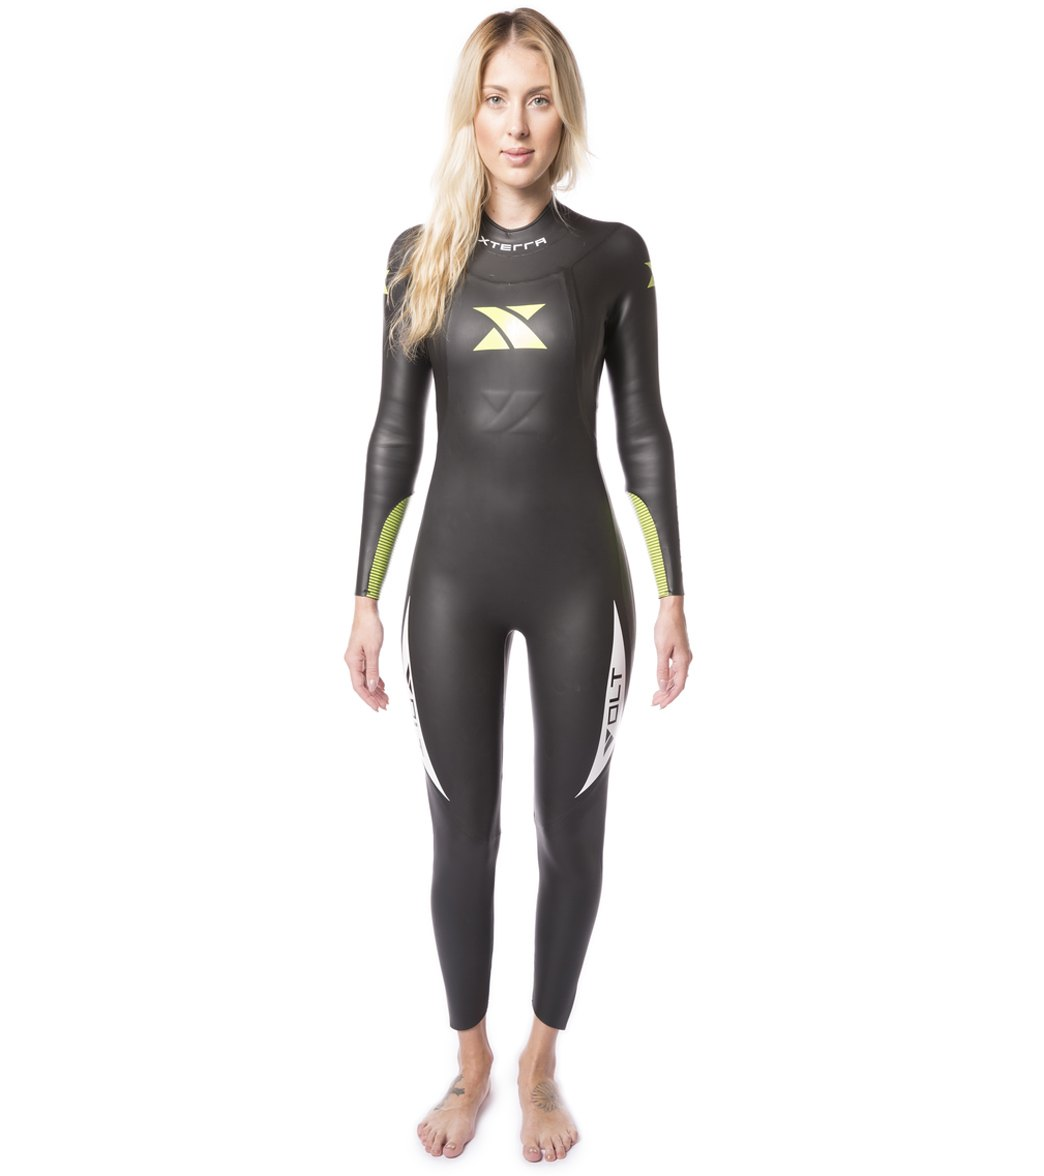 47f82b33a0 Xterra Wetsuits Women s Volt Full Tri Wetsuit at SwimOutlet.com - Free  Shipping